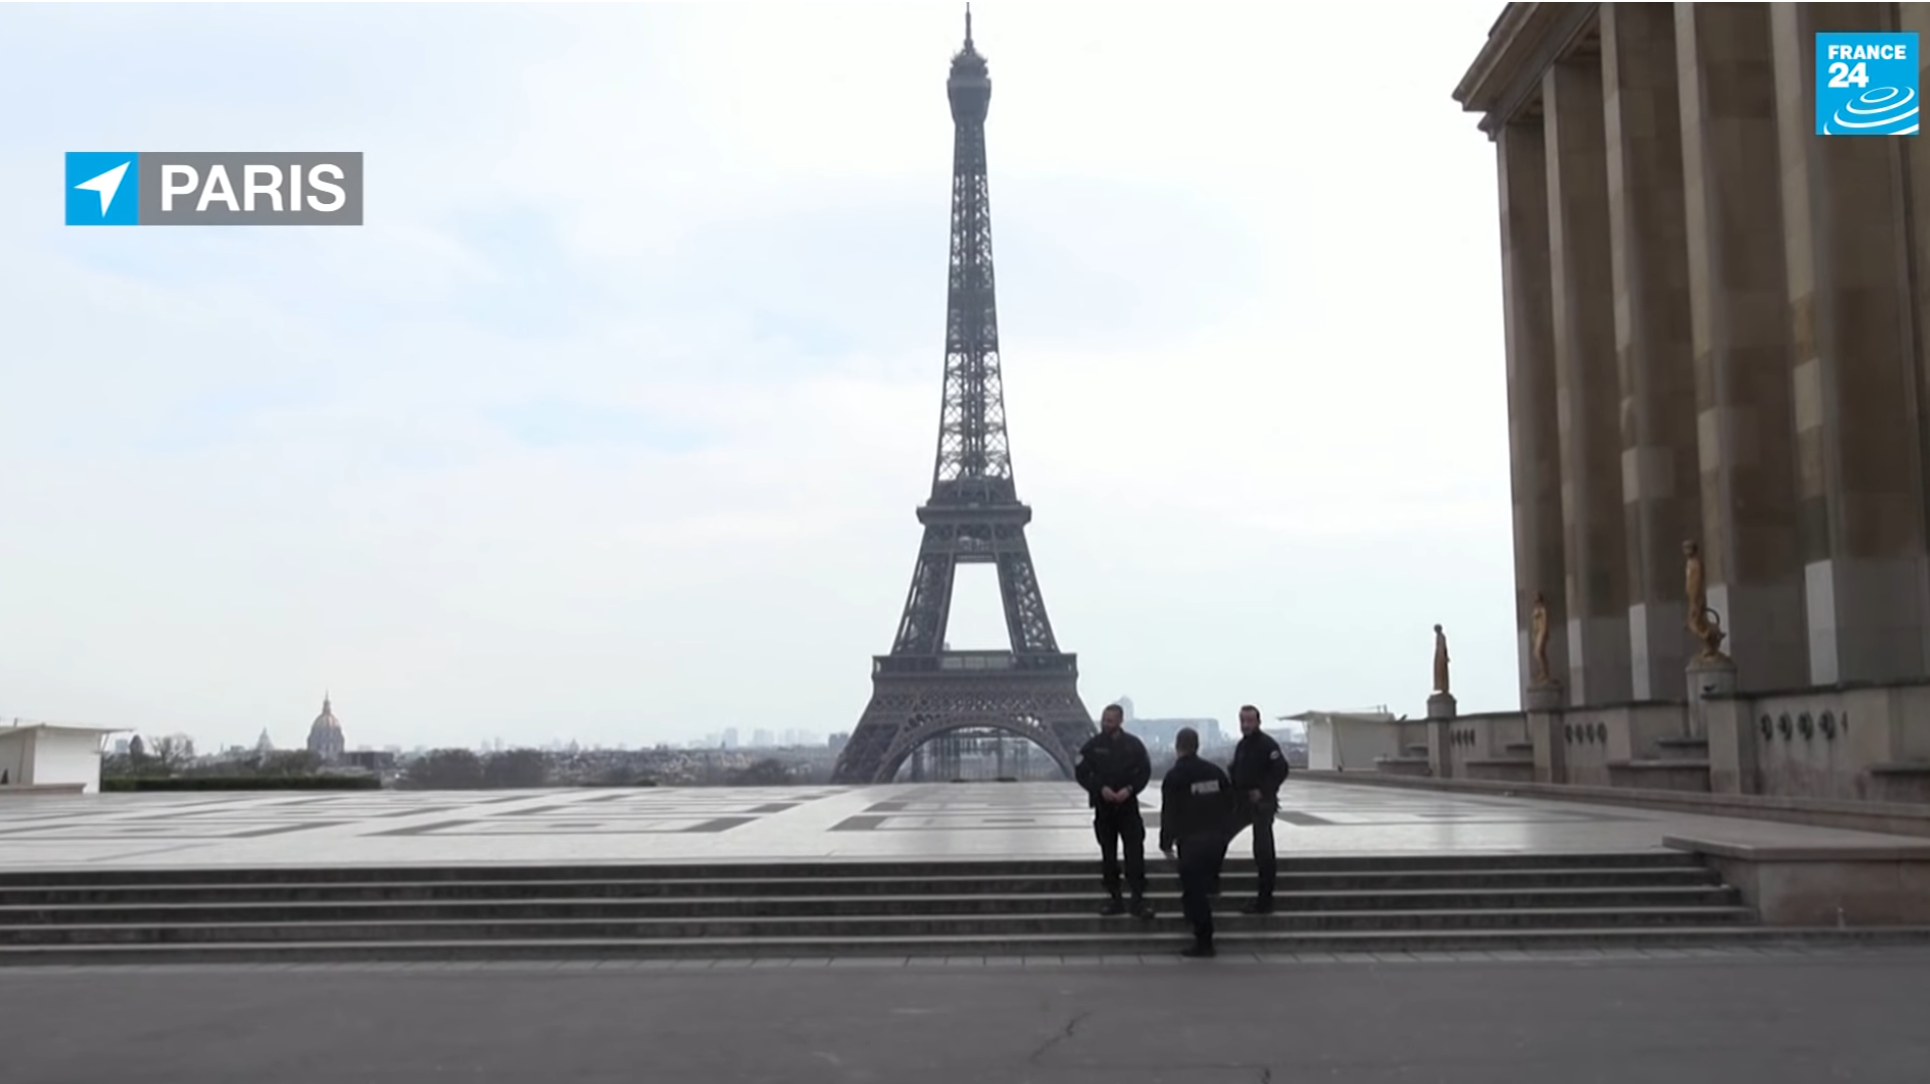 Only the police are visiting the Eiffel Tower during lockdown in Paris, March 18 2020.